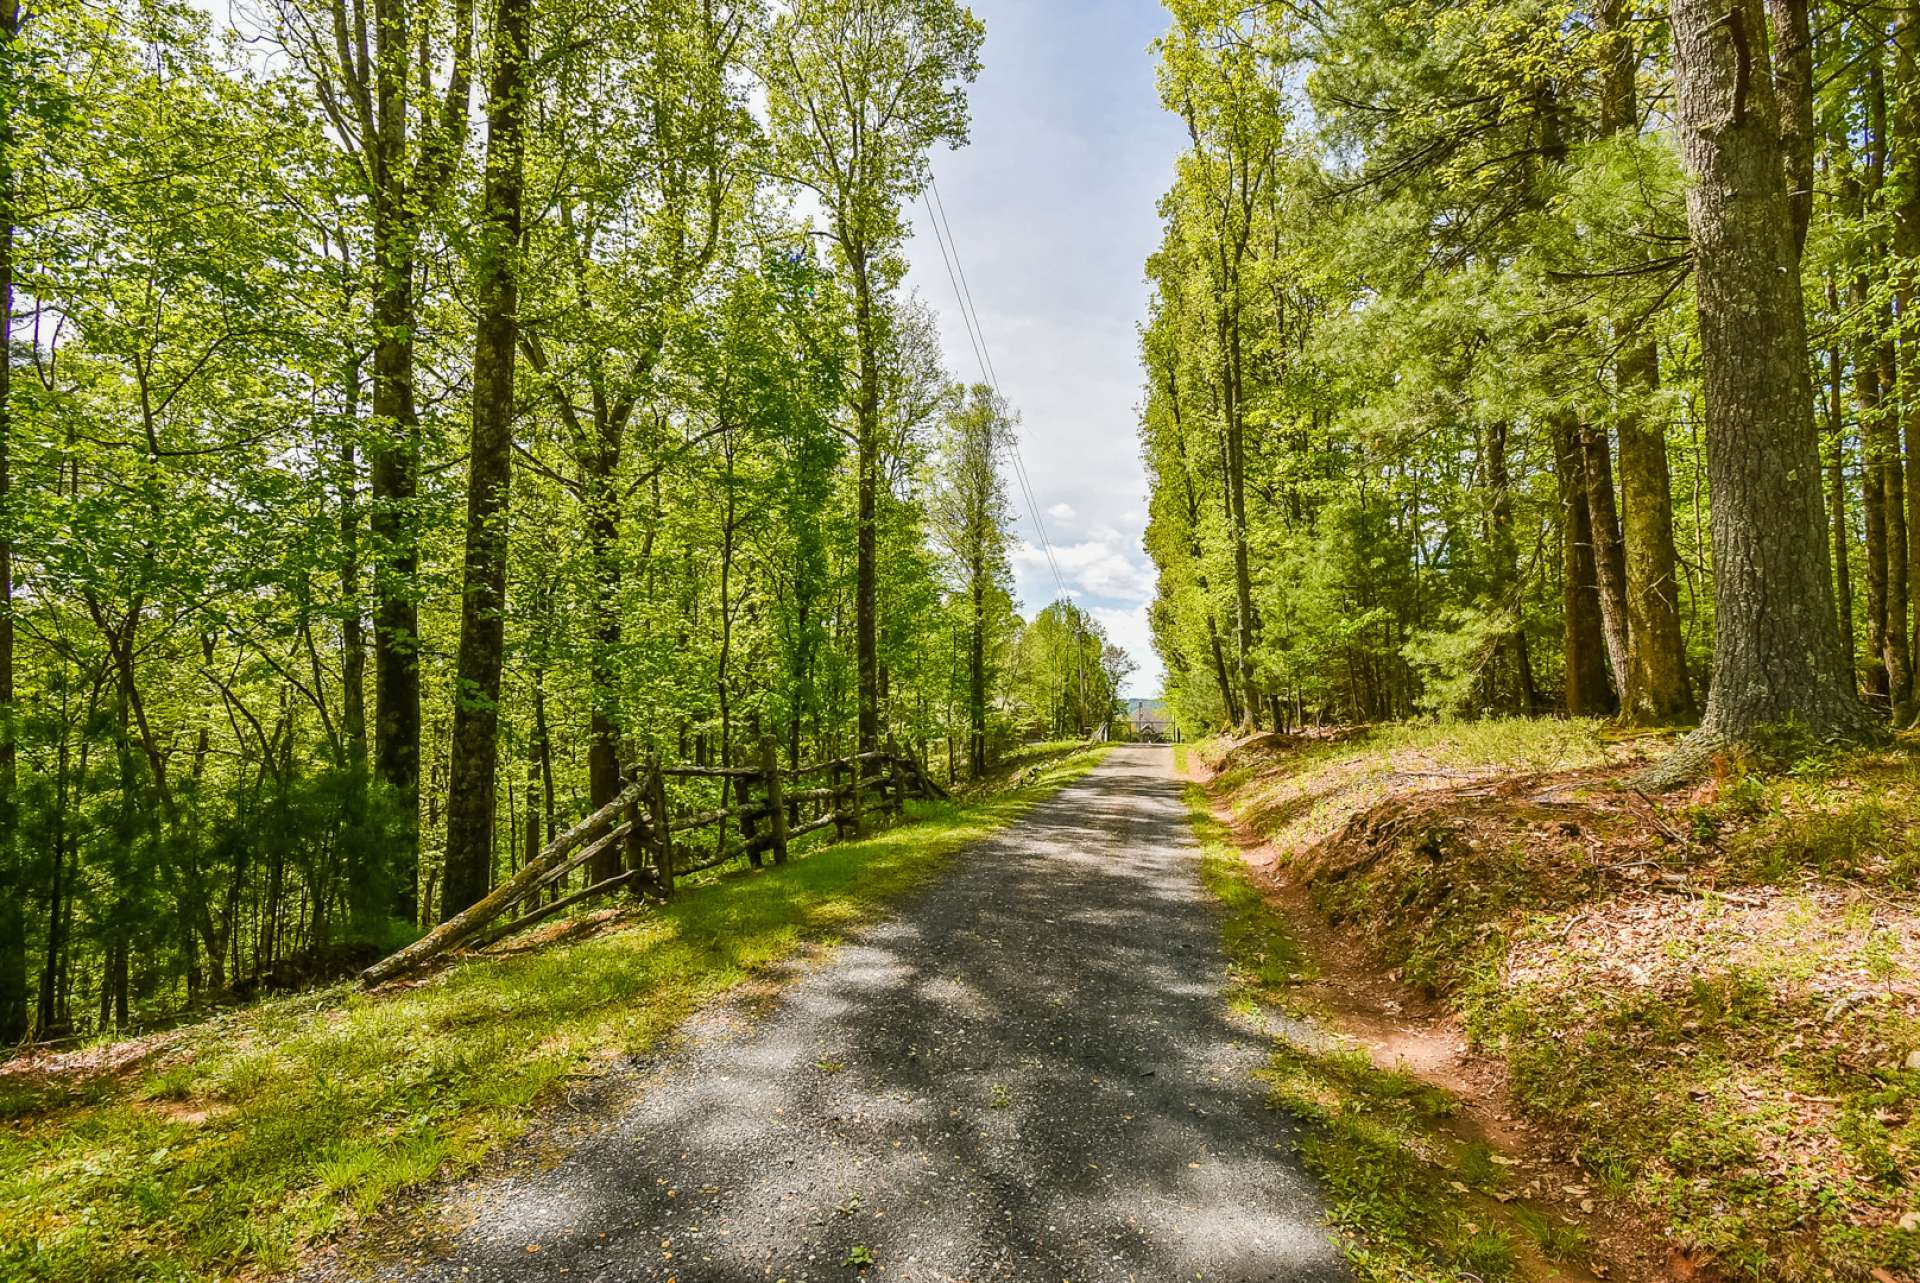 From the Parkway, a serene country graveled lane, canopied with native hardwoods and evergreens, leads you to the gated entrance.